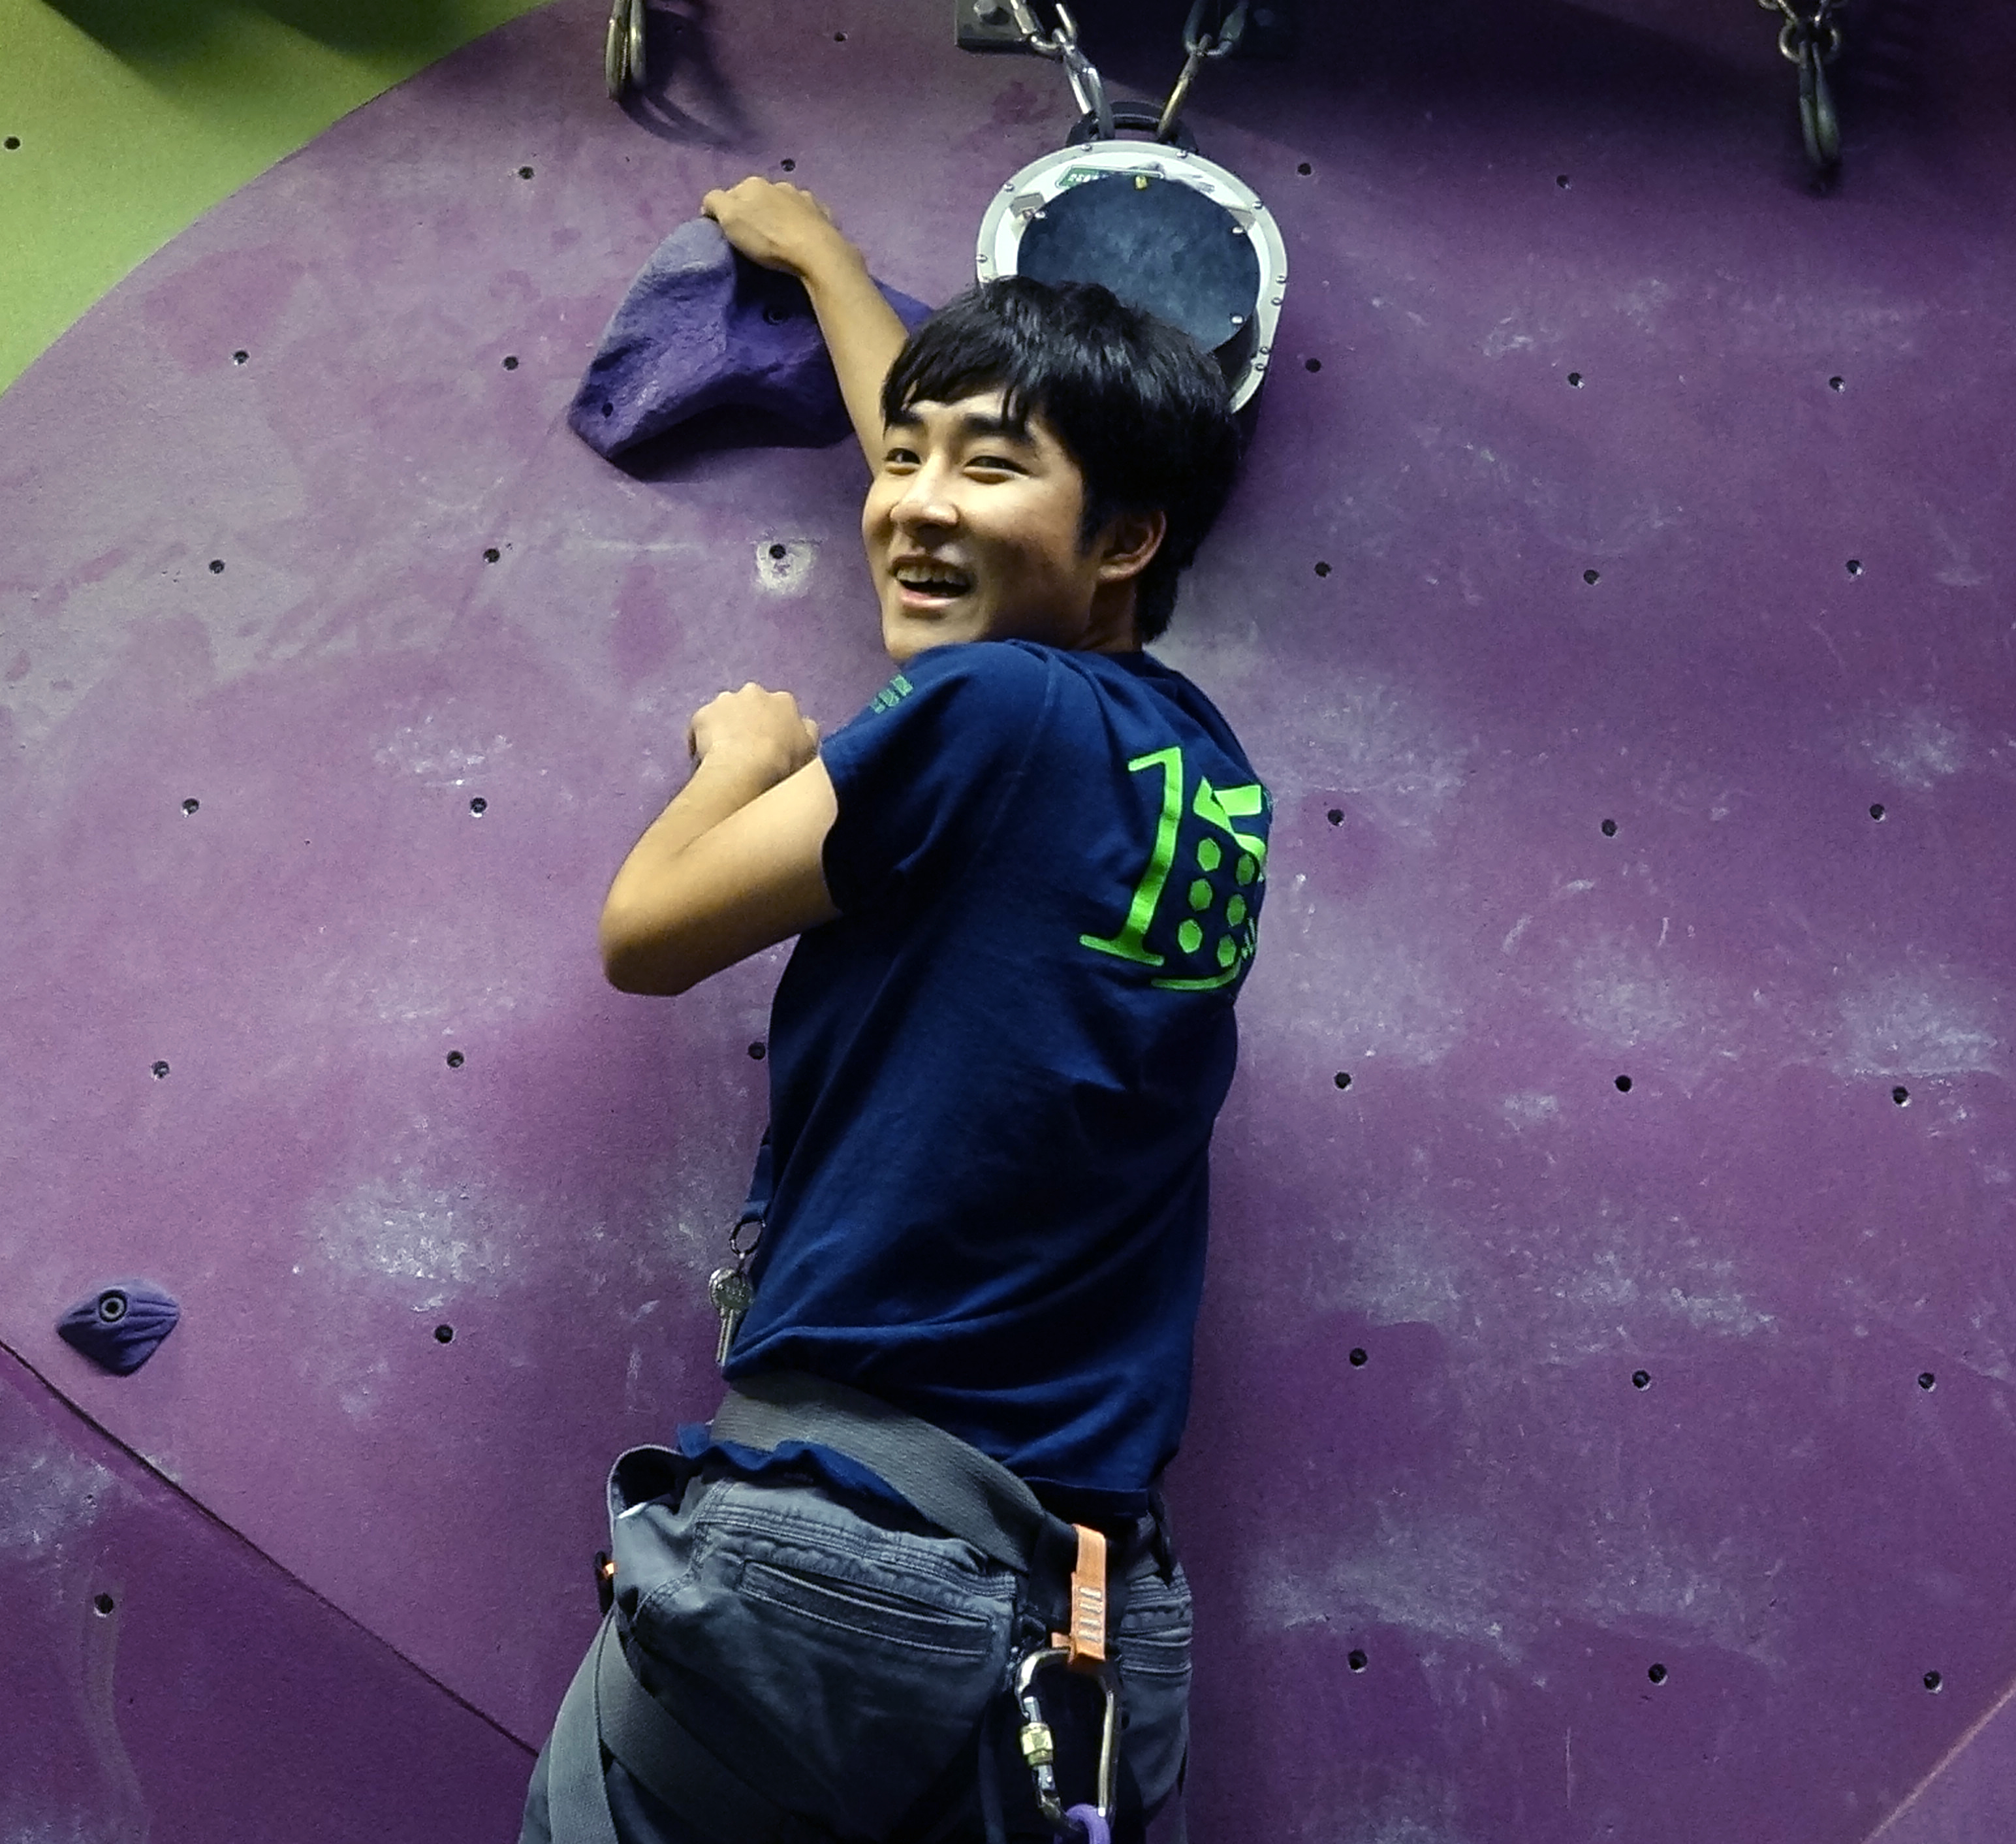 Seyoon Participates In Rock Climbing While Attending Sports Camp Weekend.